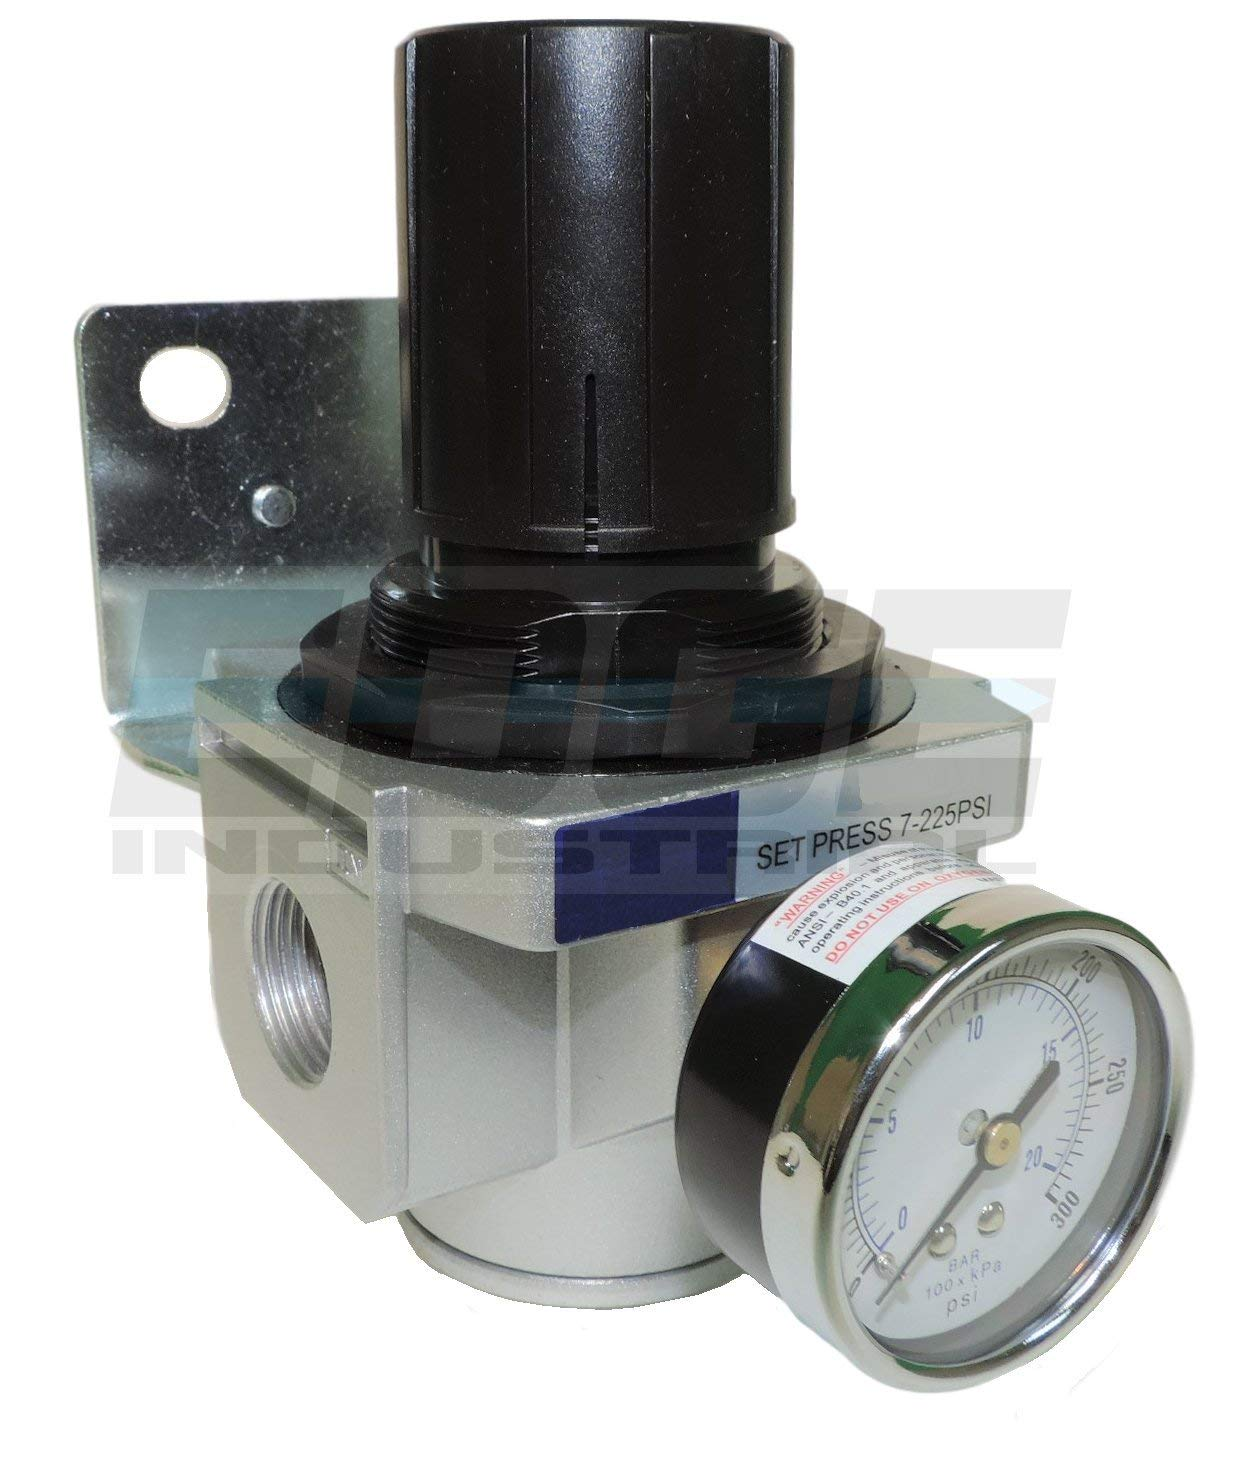 Cheap Electronic Pressure Regulator, find Electronic